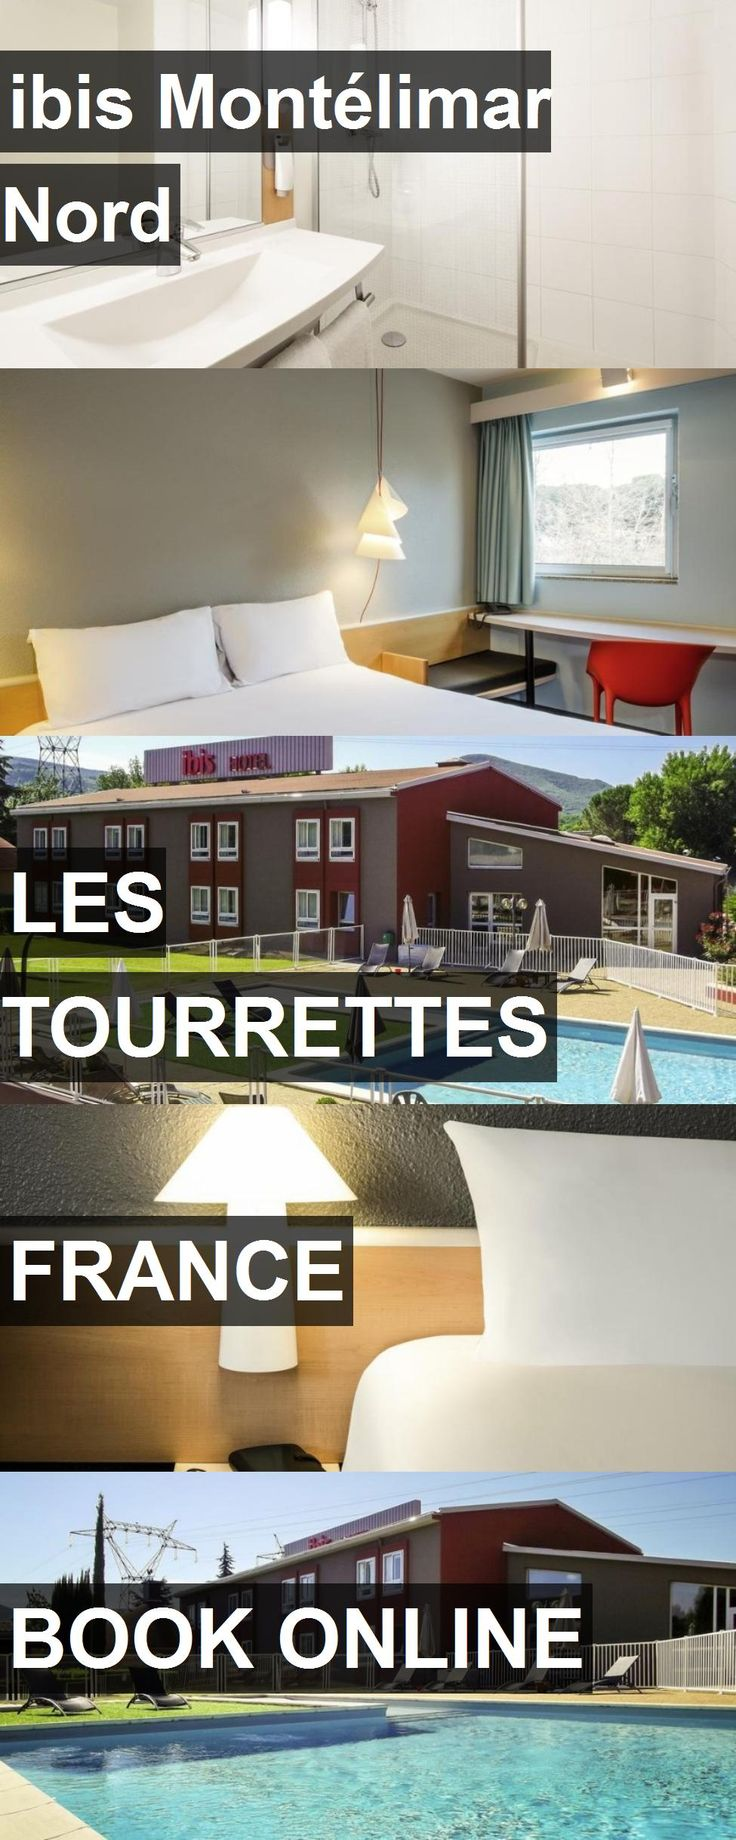 Hotel ibis Montélimar Nord in Les Tourrettes, France. For more information, photos, reviews and best prices please follow the link. #France #LesTourrettes #travel #vacation #hotel